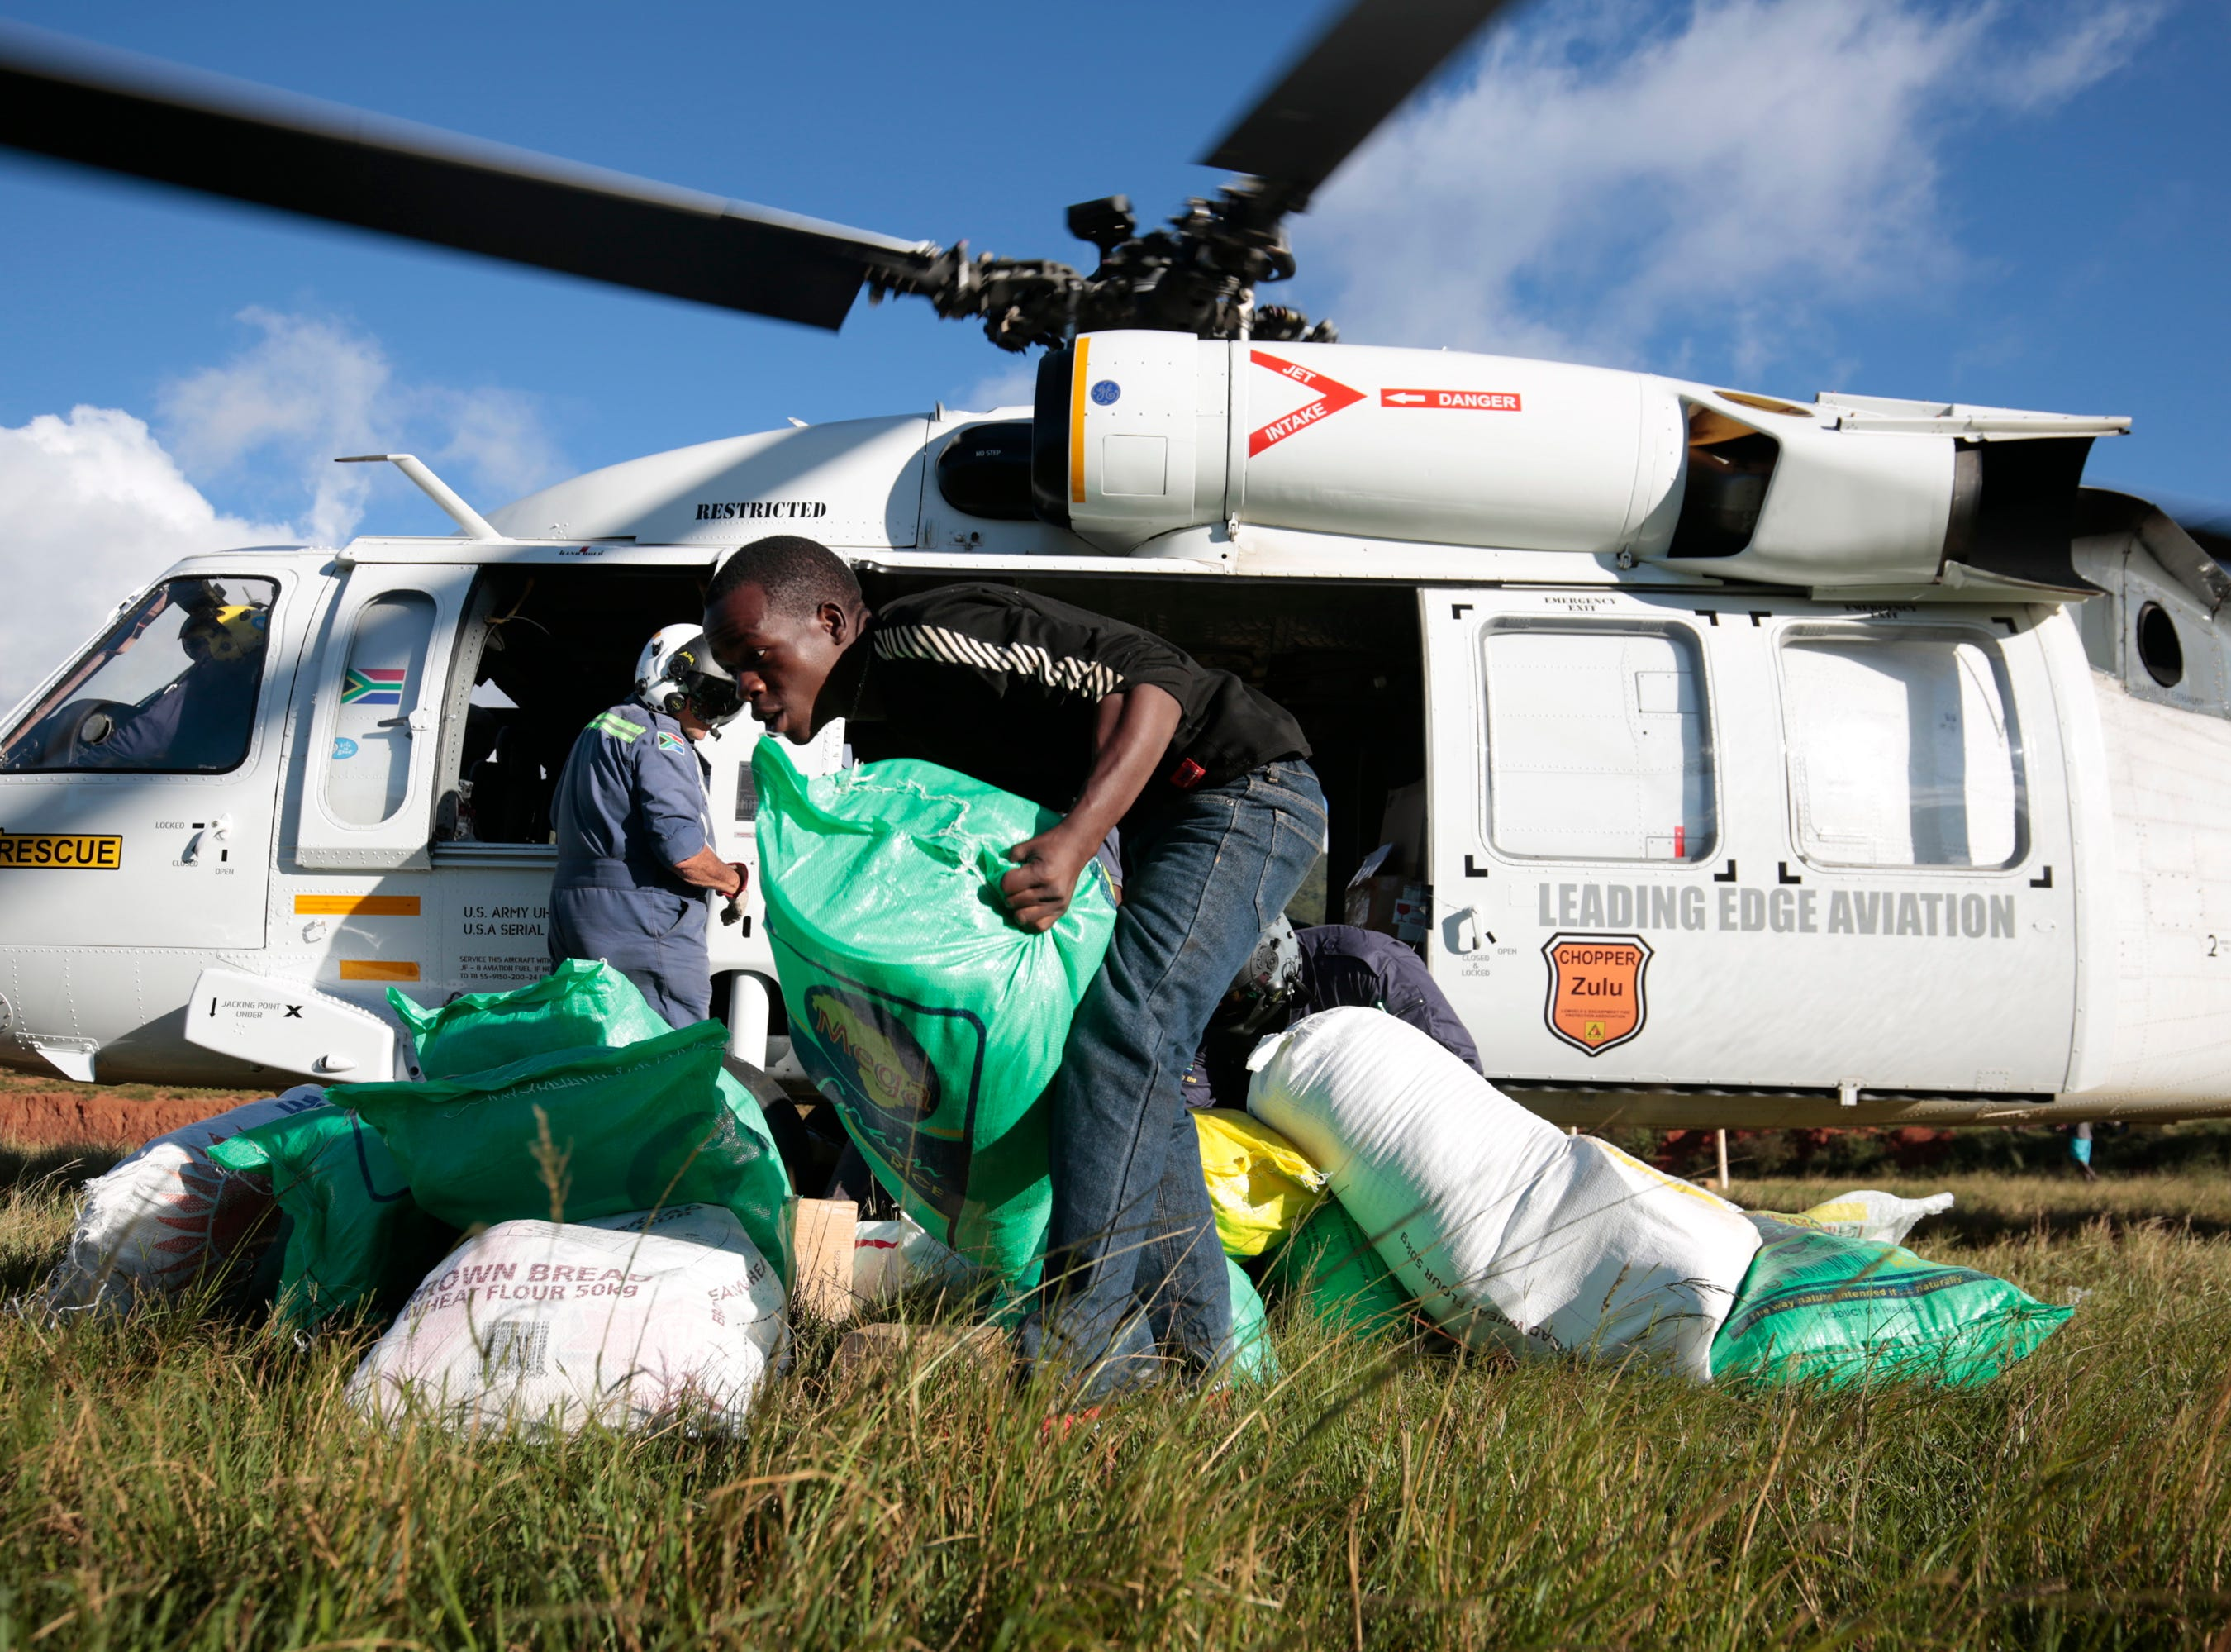 A helicopter brings relief aid in Ngangu, Chimanimani, some 550km east of Harare, Zimbabwe on March 22, 2019, following the passage of Cyclone Idai. More than 200 people are believed to have died with hundreds injured, several missing and thousands displaced after Cyclone Idai struck Zimbabwe. President Emmerson Mnangagwa has declared Cyclone Idai a national disaster. Neighboring countries such Zambia, Namibia, and South Africa have offered material help to the affected people and areas.